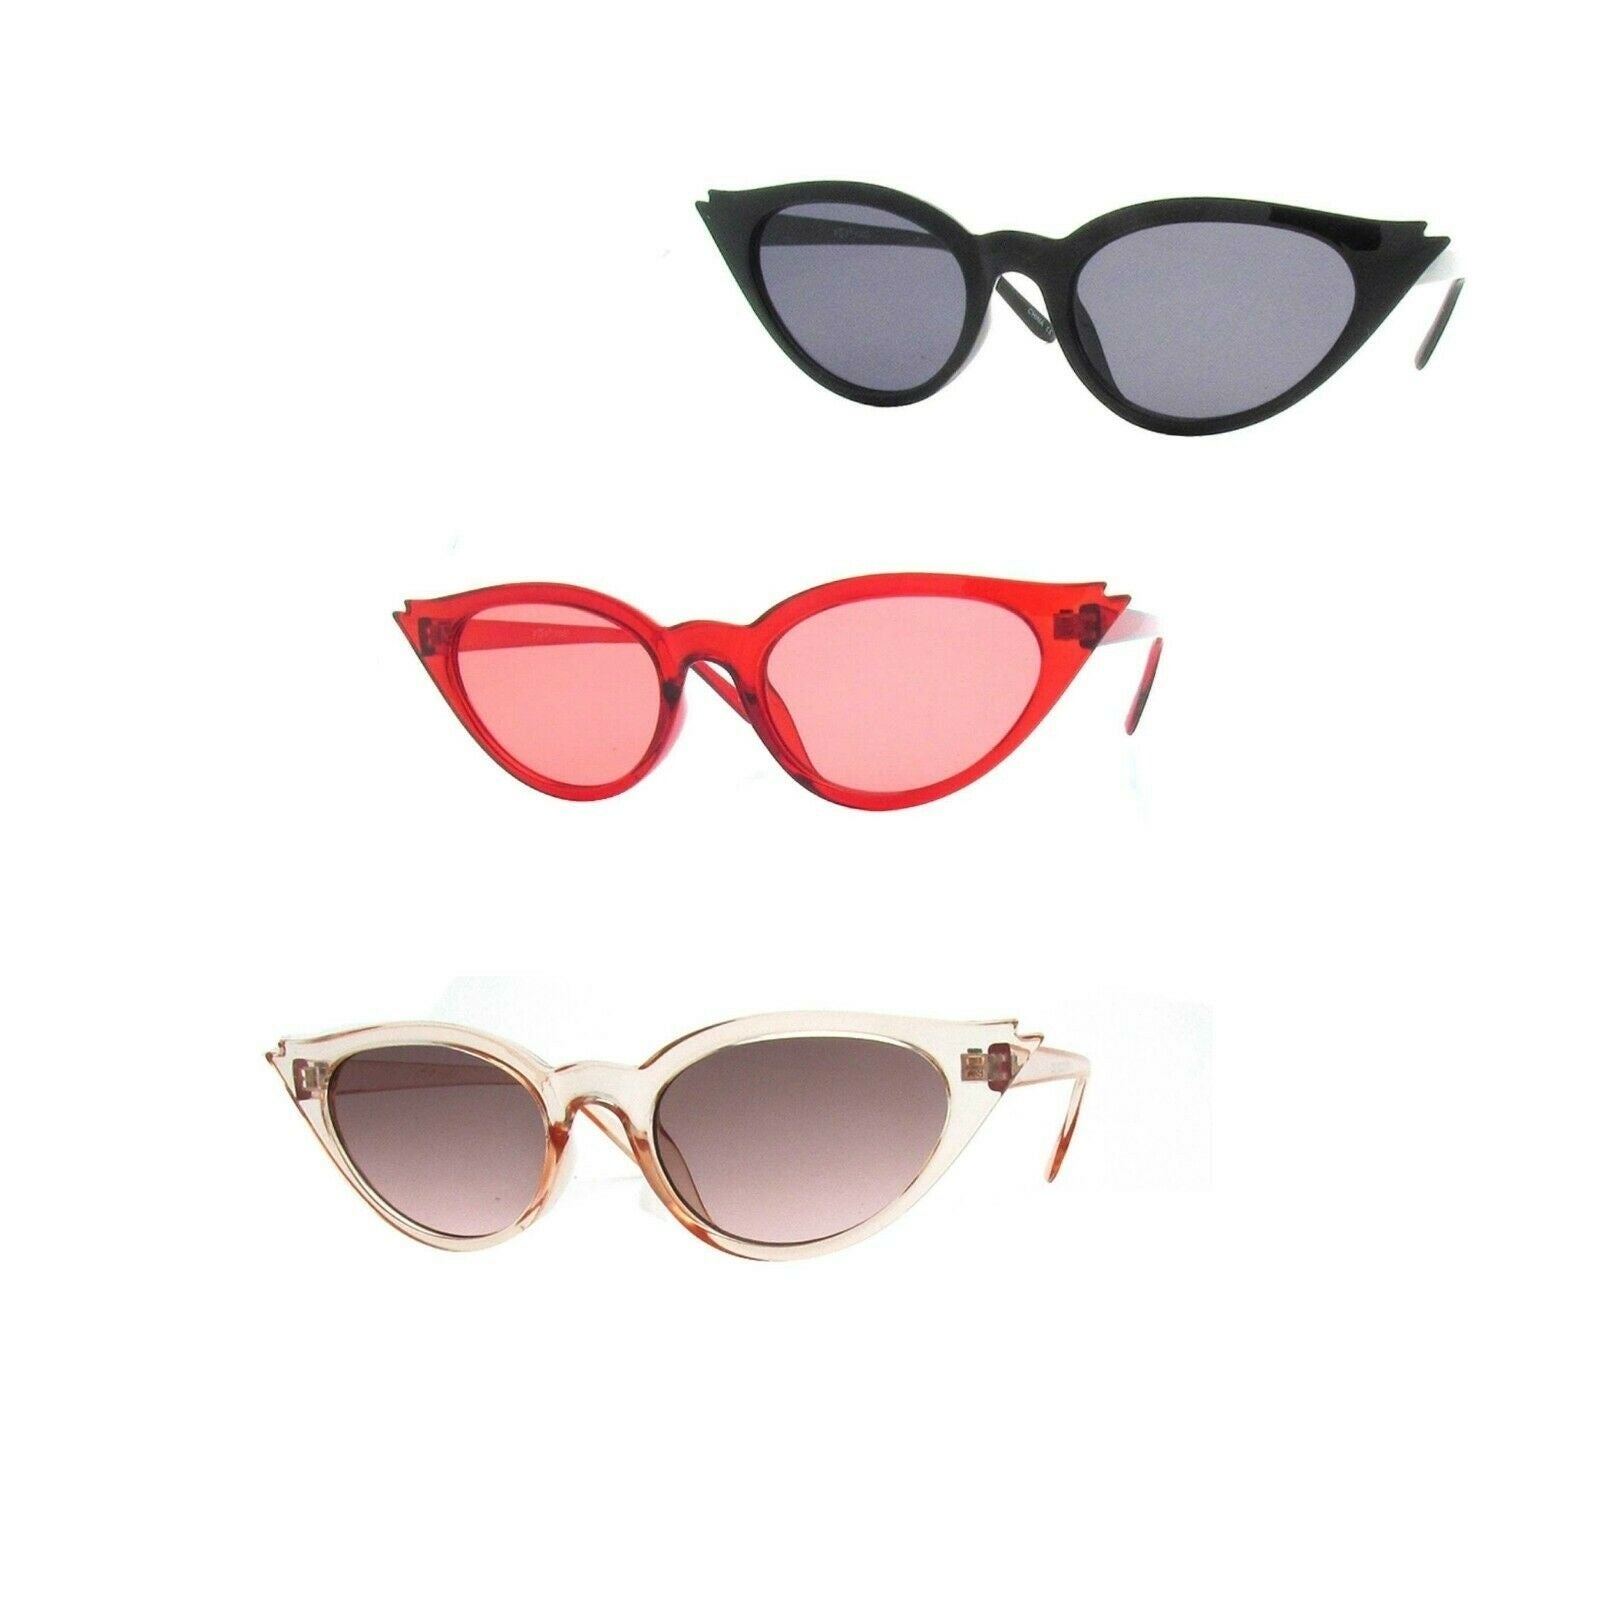 a713fa637 Shop Women Retro 1950s Cat Eye Sunglasses P2457 - Free Shipping On Orders  Over $45 - Overstock - 27565298